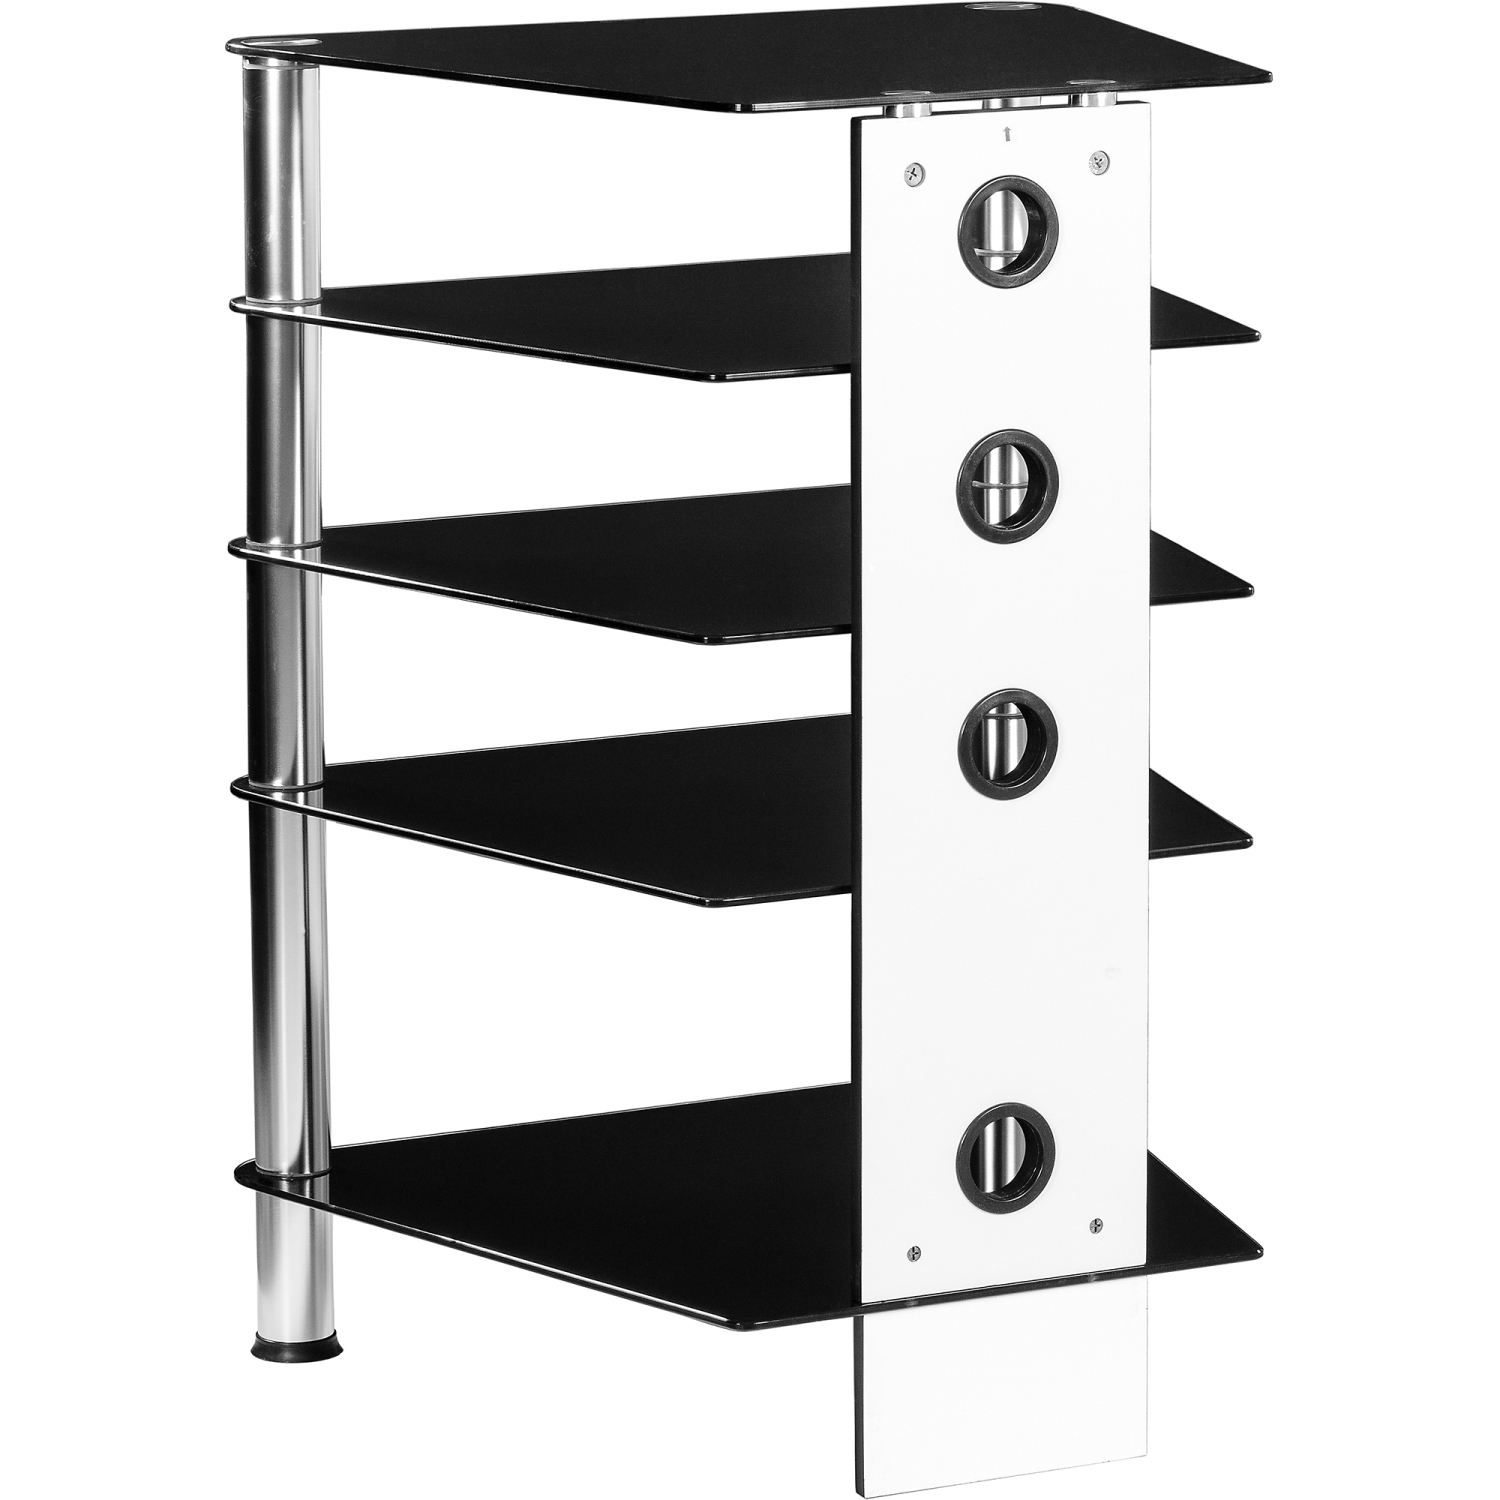 stilista tv rack wardrobe stand furniture regal hifi audio glass black glass ebay. Black Bedroom Furniture Sets. Home Design Ideas